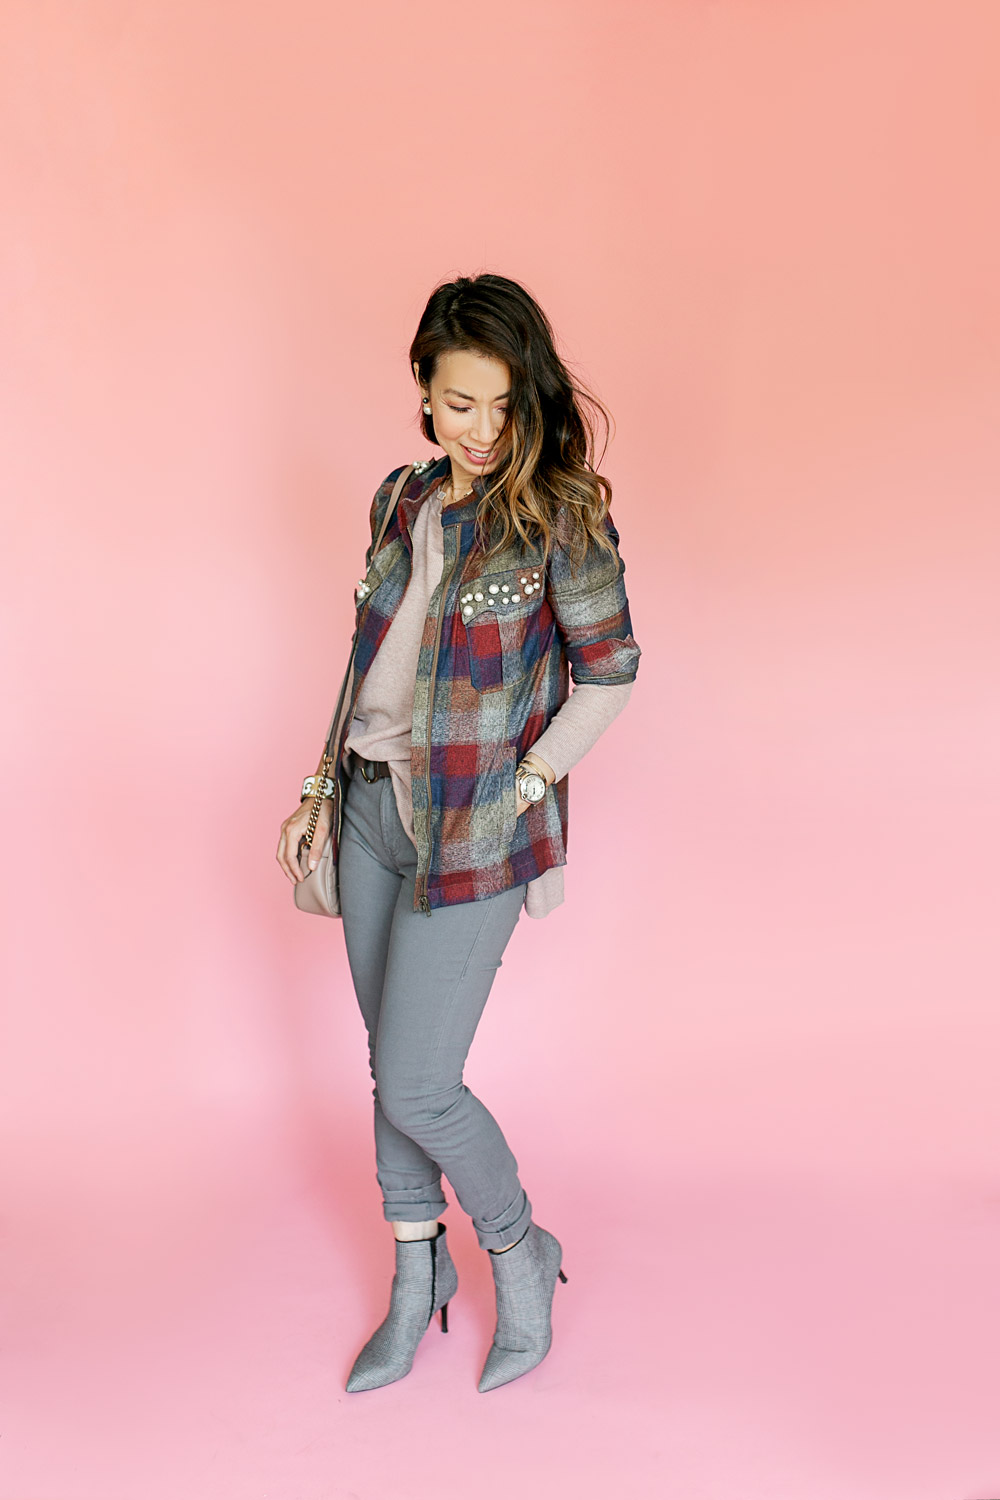 a529171eec304 ... style of sam in cabi fall 2018 pearl plaid collage jacket dandy boot